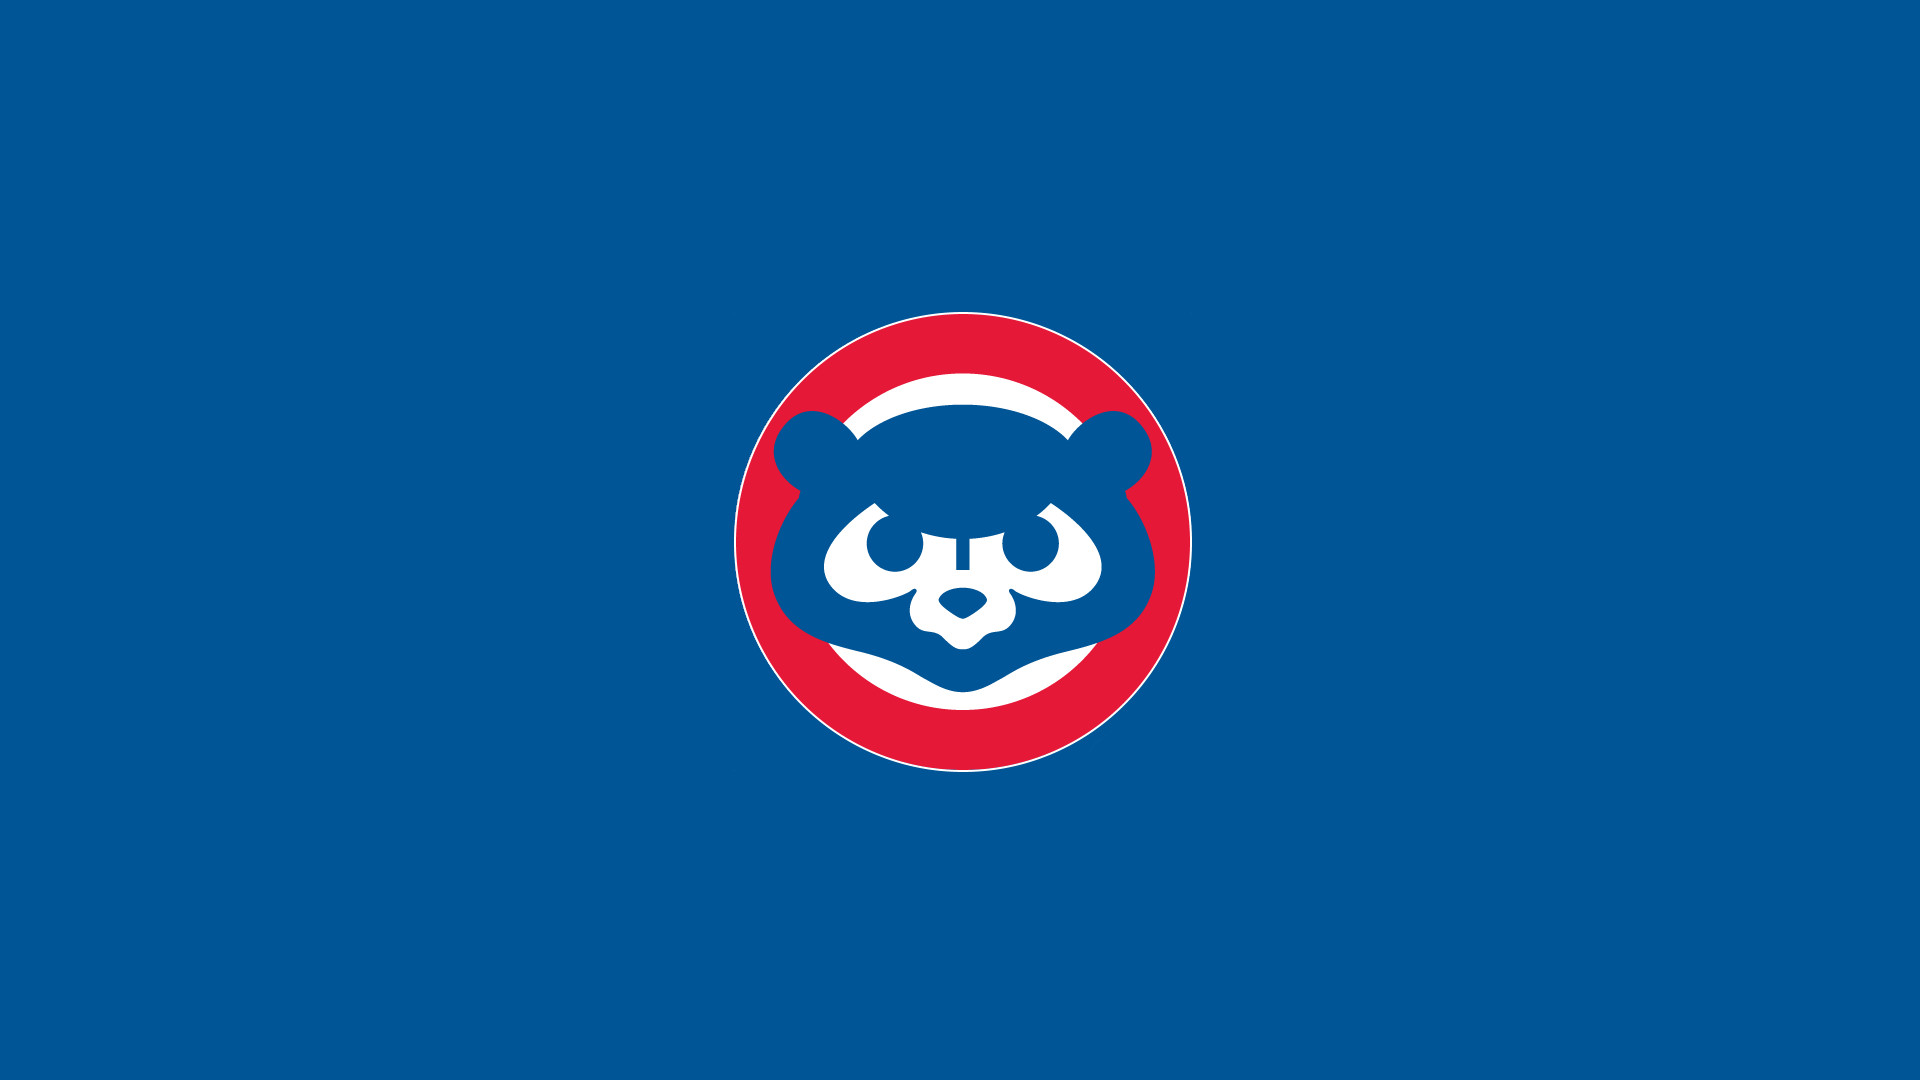 Phillies Iphone Wallpaper Chicago Cubs 2018 Wallpaper 72 Images